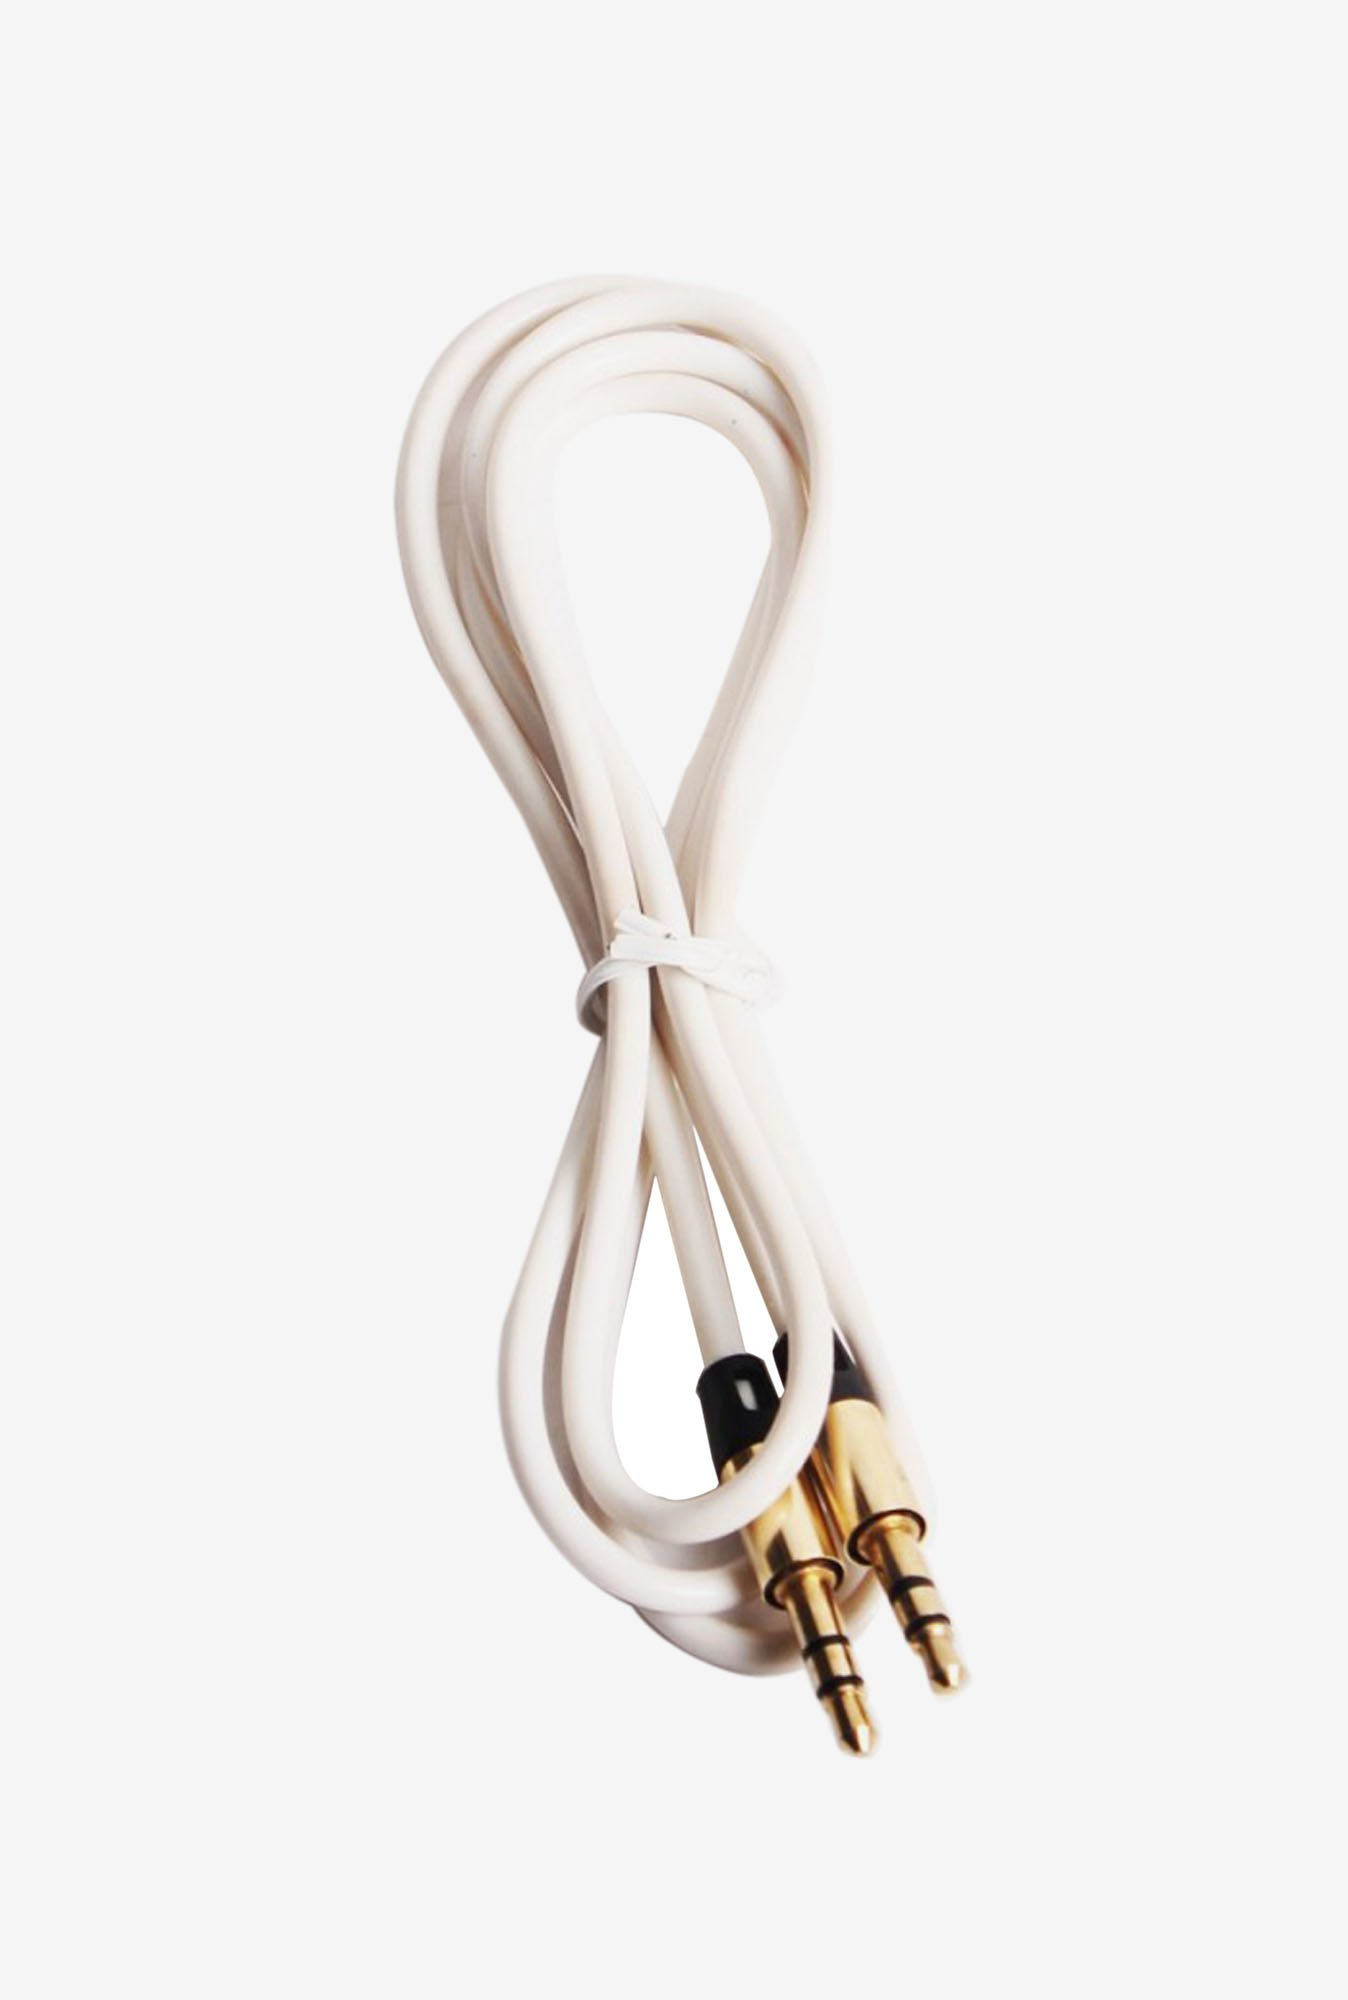 Callmate Metal AUX to AUX Cable White